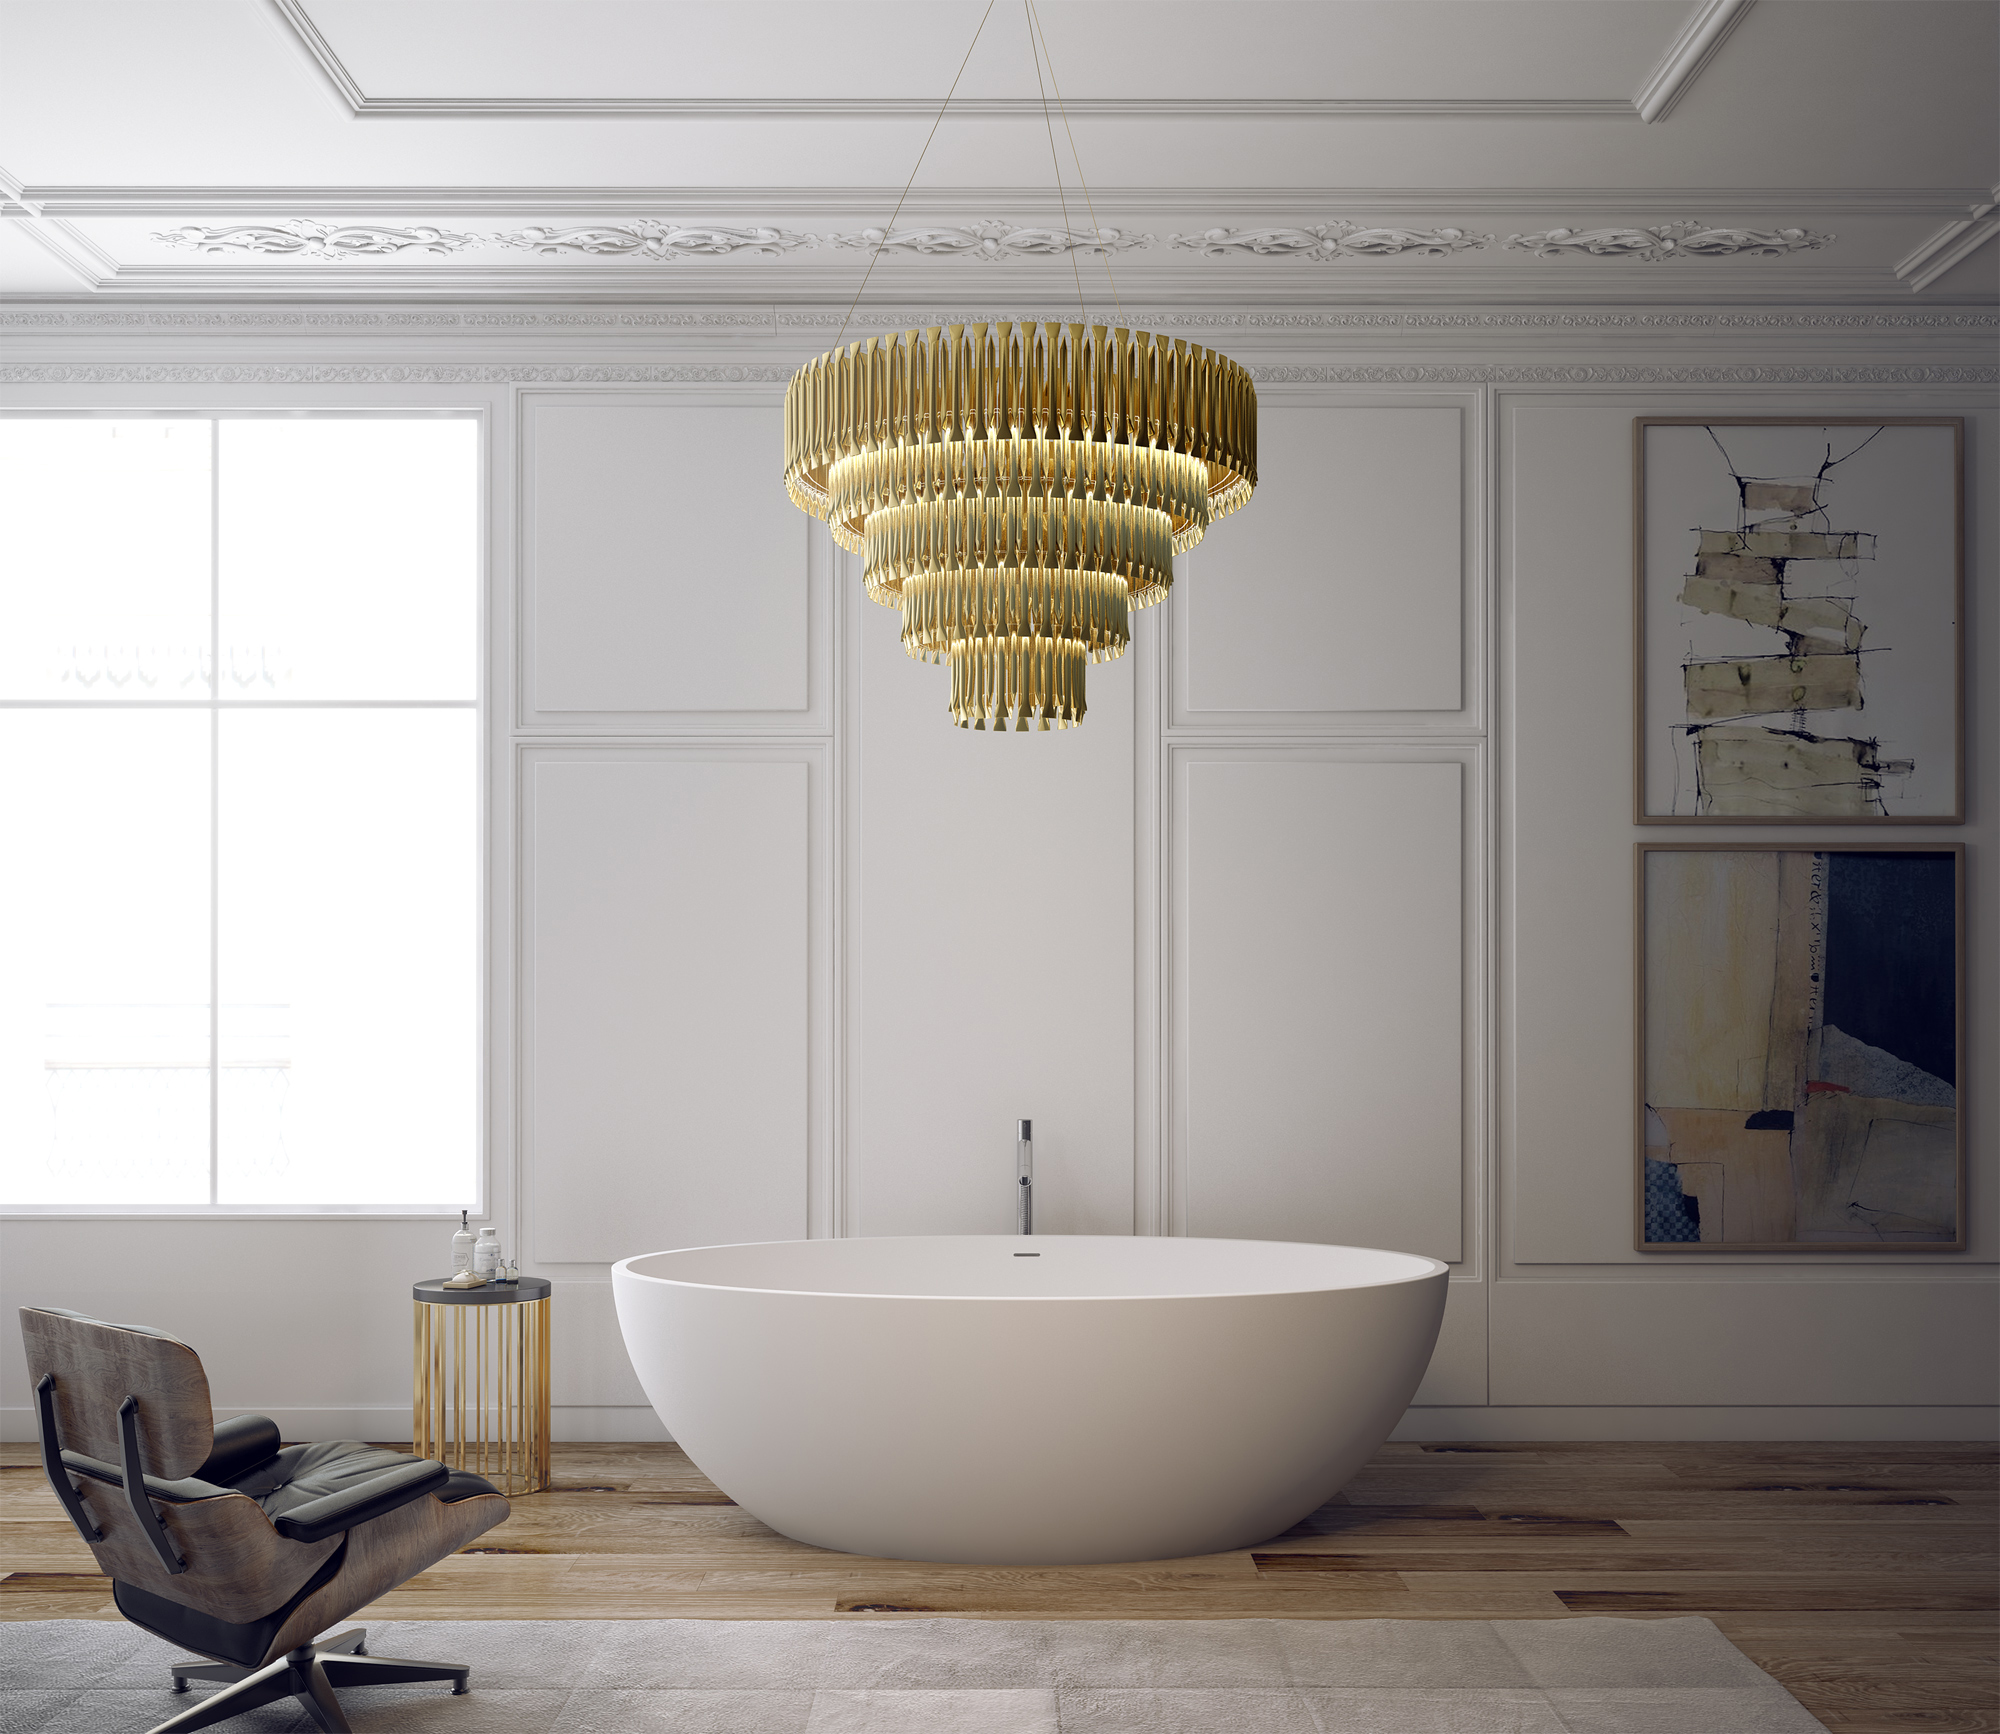 5 Bathroom Lighting Ideas You need to Use in 2017 celebrity bedrooms 5 Celebrity Bedrooms That Will Blow Your Mind 5 Bathroom Lighting Ideas You need to Use in 2017 celebrity bedrooms 5 Celebrity Bedrooms That Will Blow Your Mind 5 Bathroom Lighting Ideas You need to Use in 2017